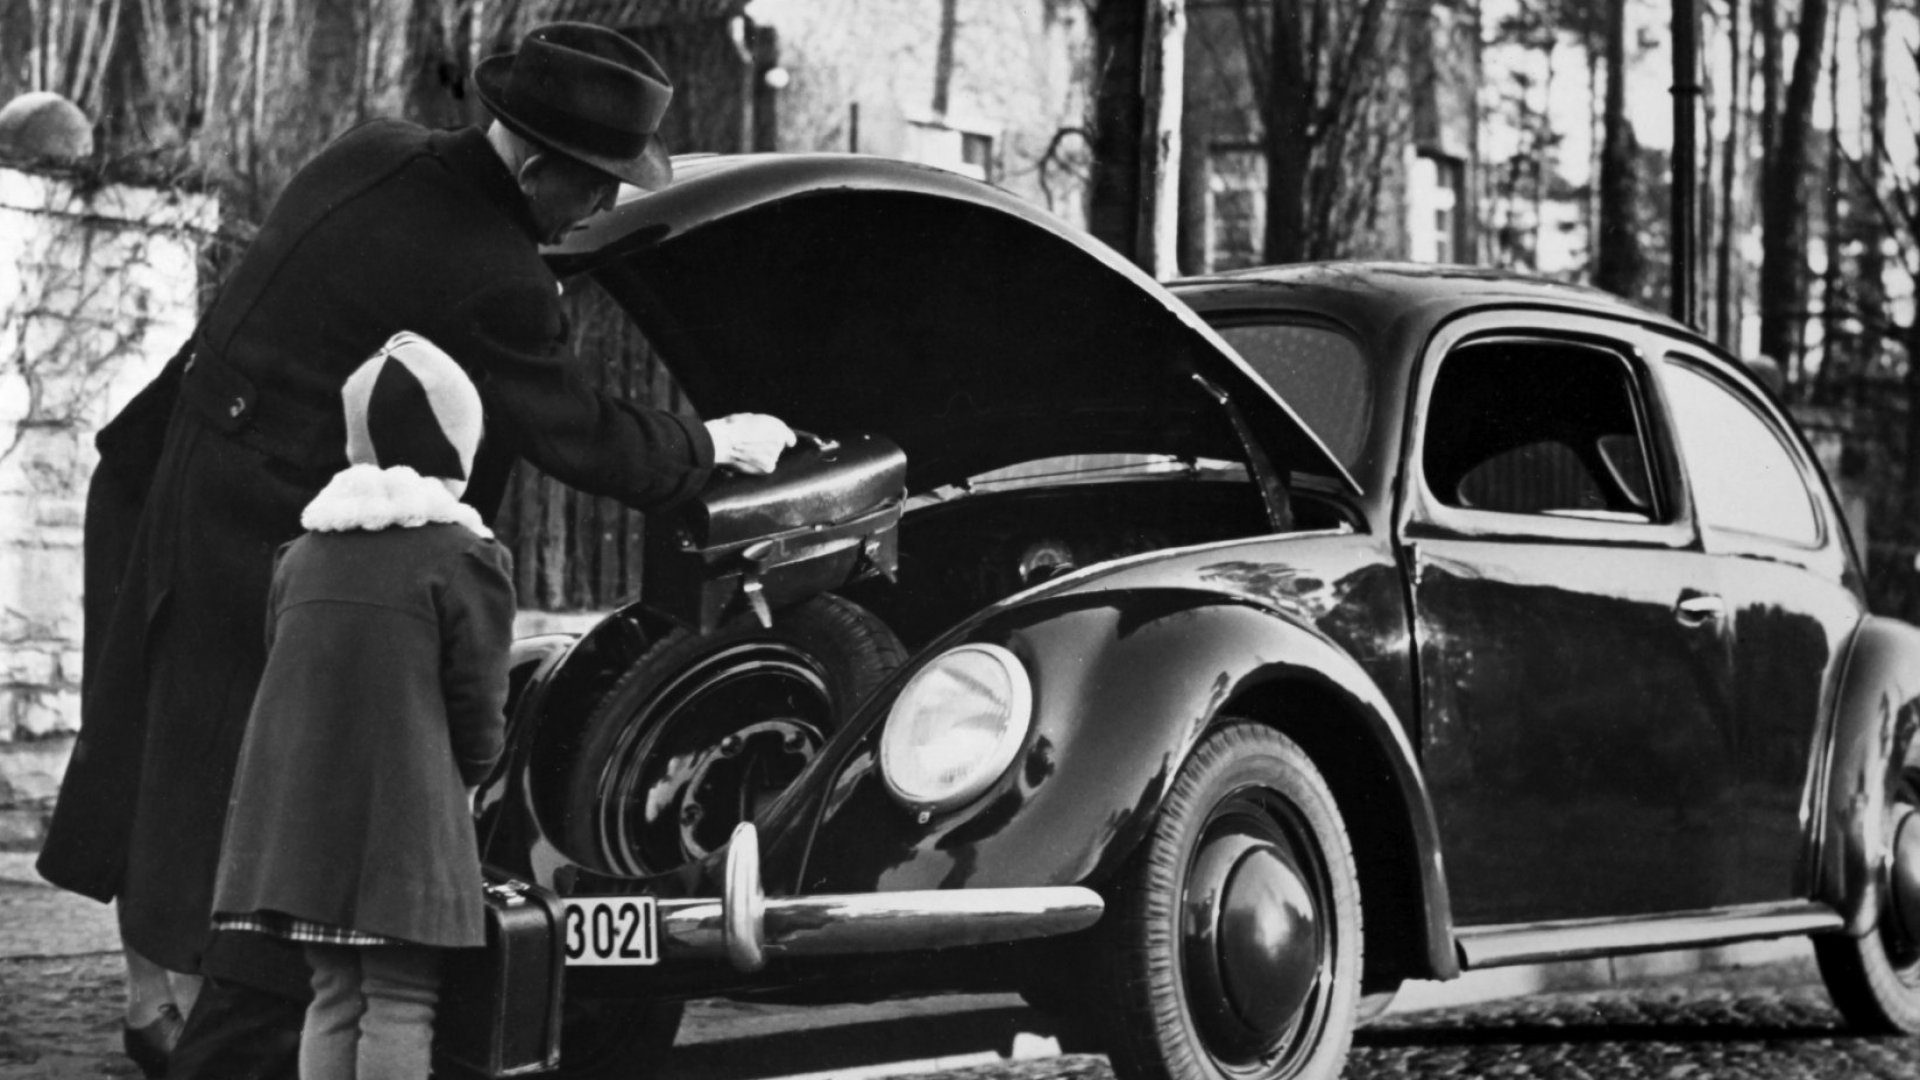 Volkswagen Just Killed a Much-Loved Iconic Car in Favor of a More Instagrammable One